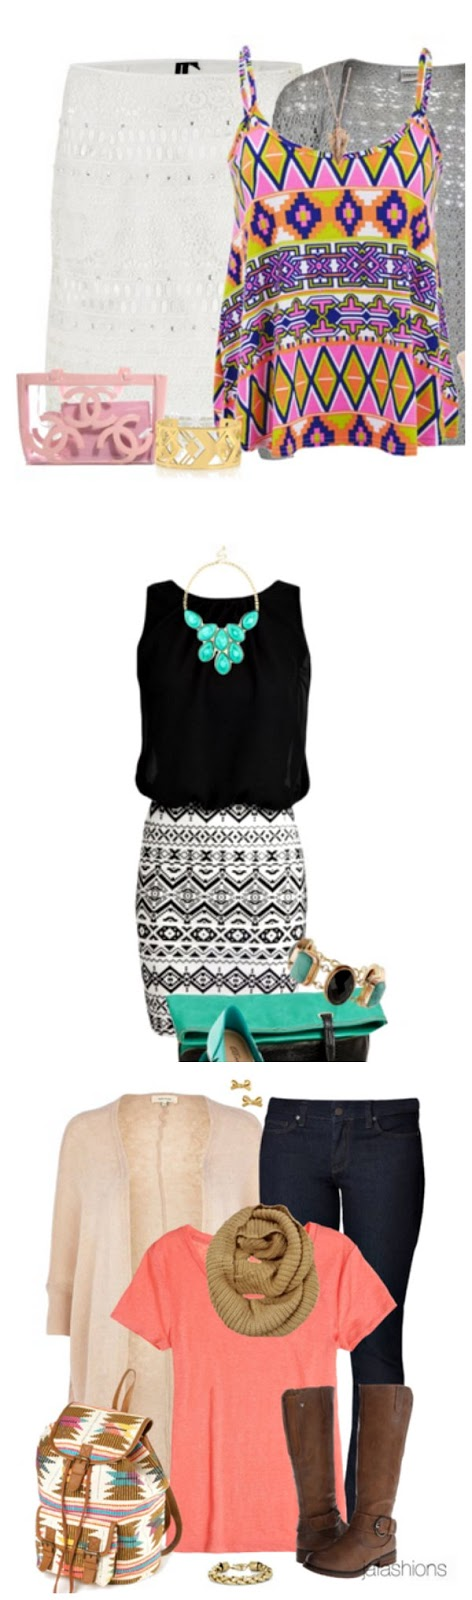 Aztec print outfits for spring.  Click through for sources. www.craftingintherain.com